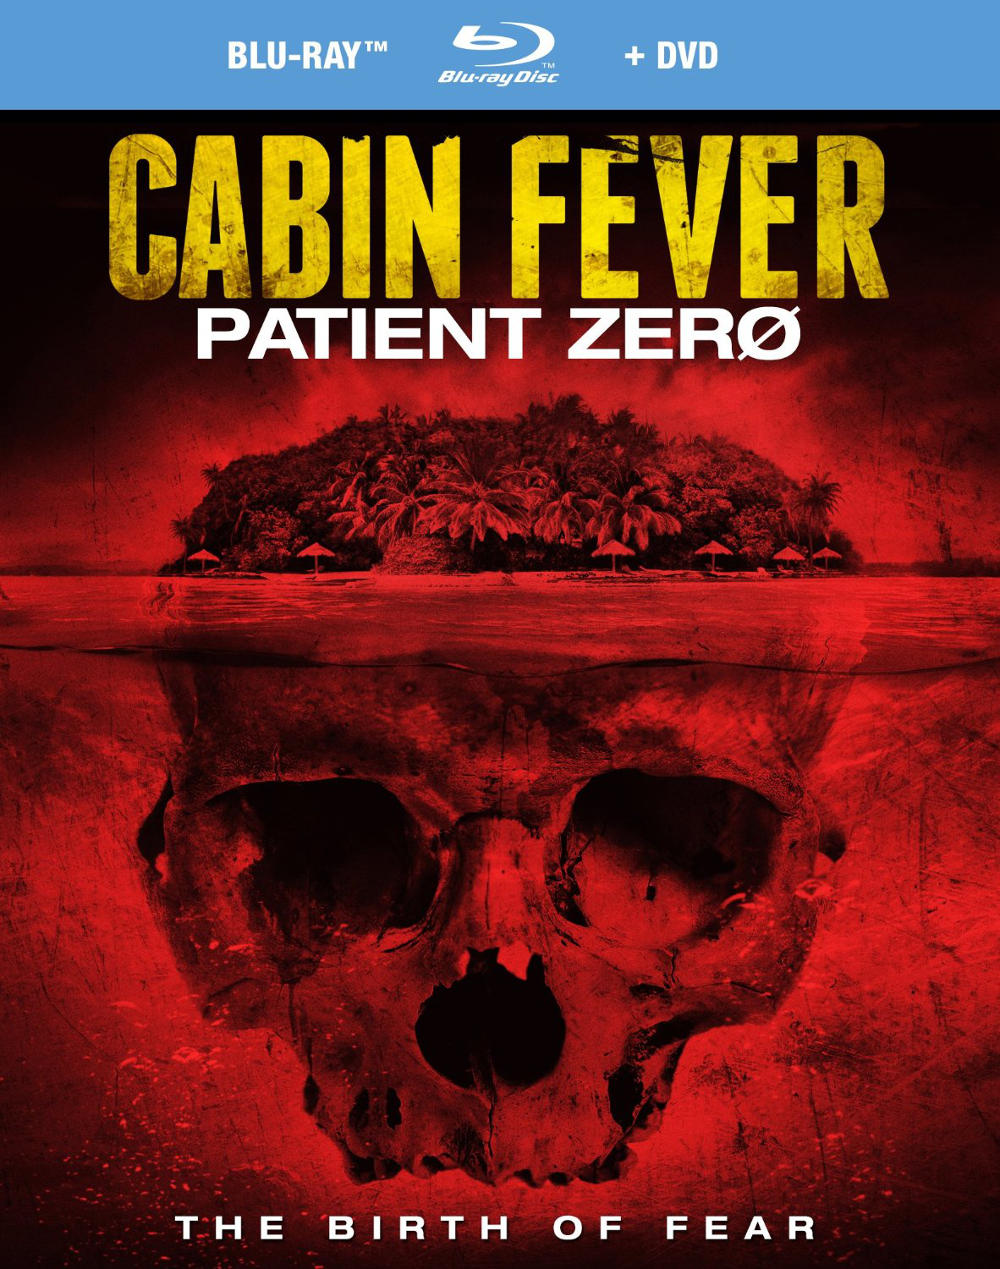 Cabin Fever: Patient Zero Blu-ray / DVD US Release Date Announced